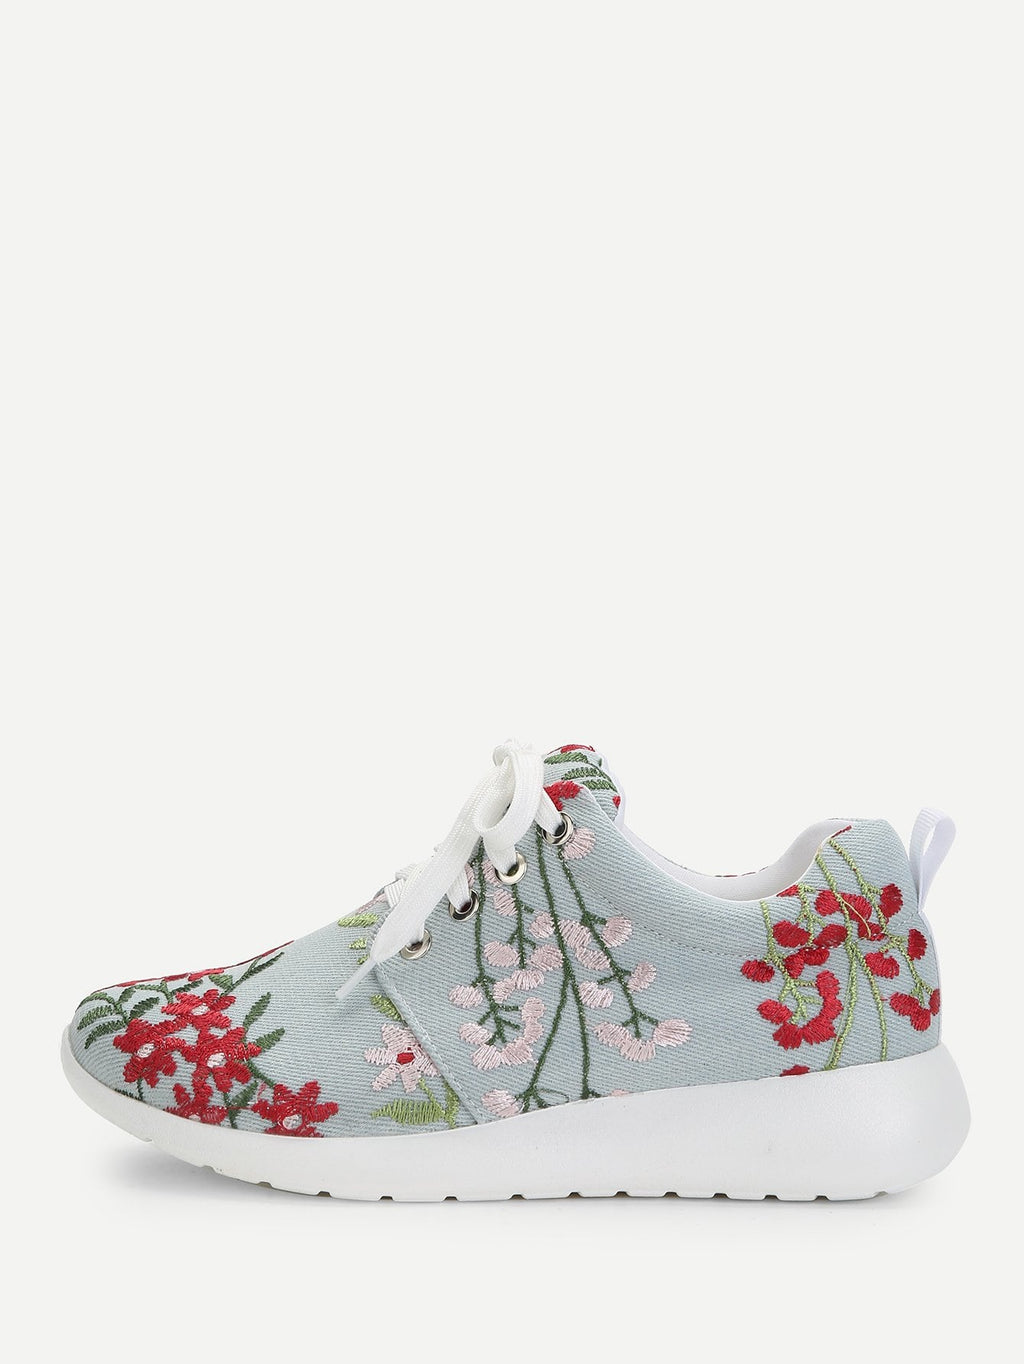 Calico Embroidery Lace Up Sneakers